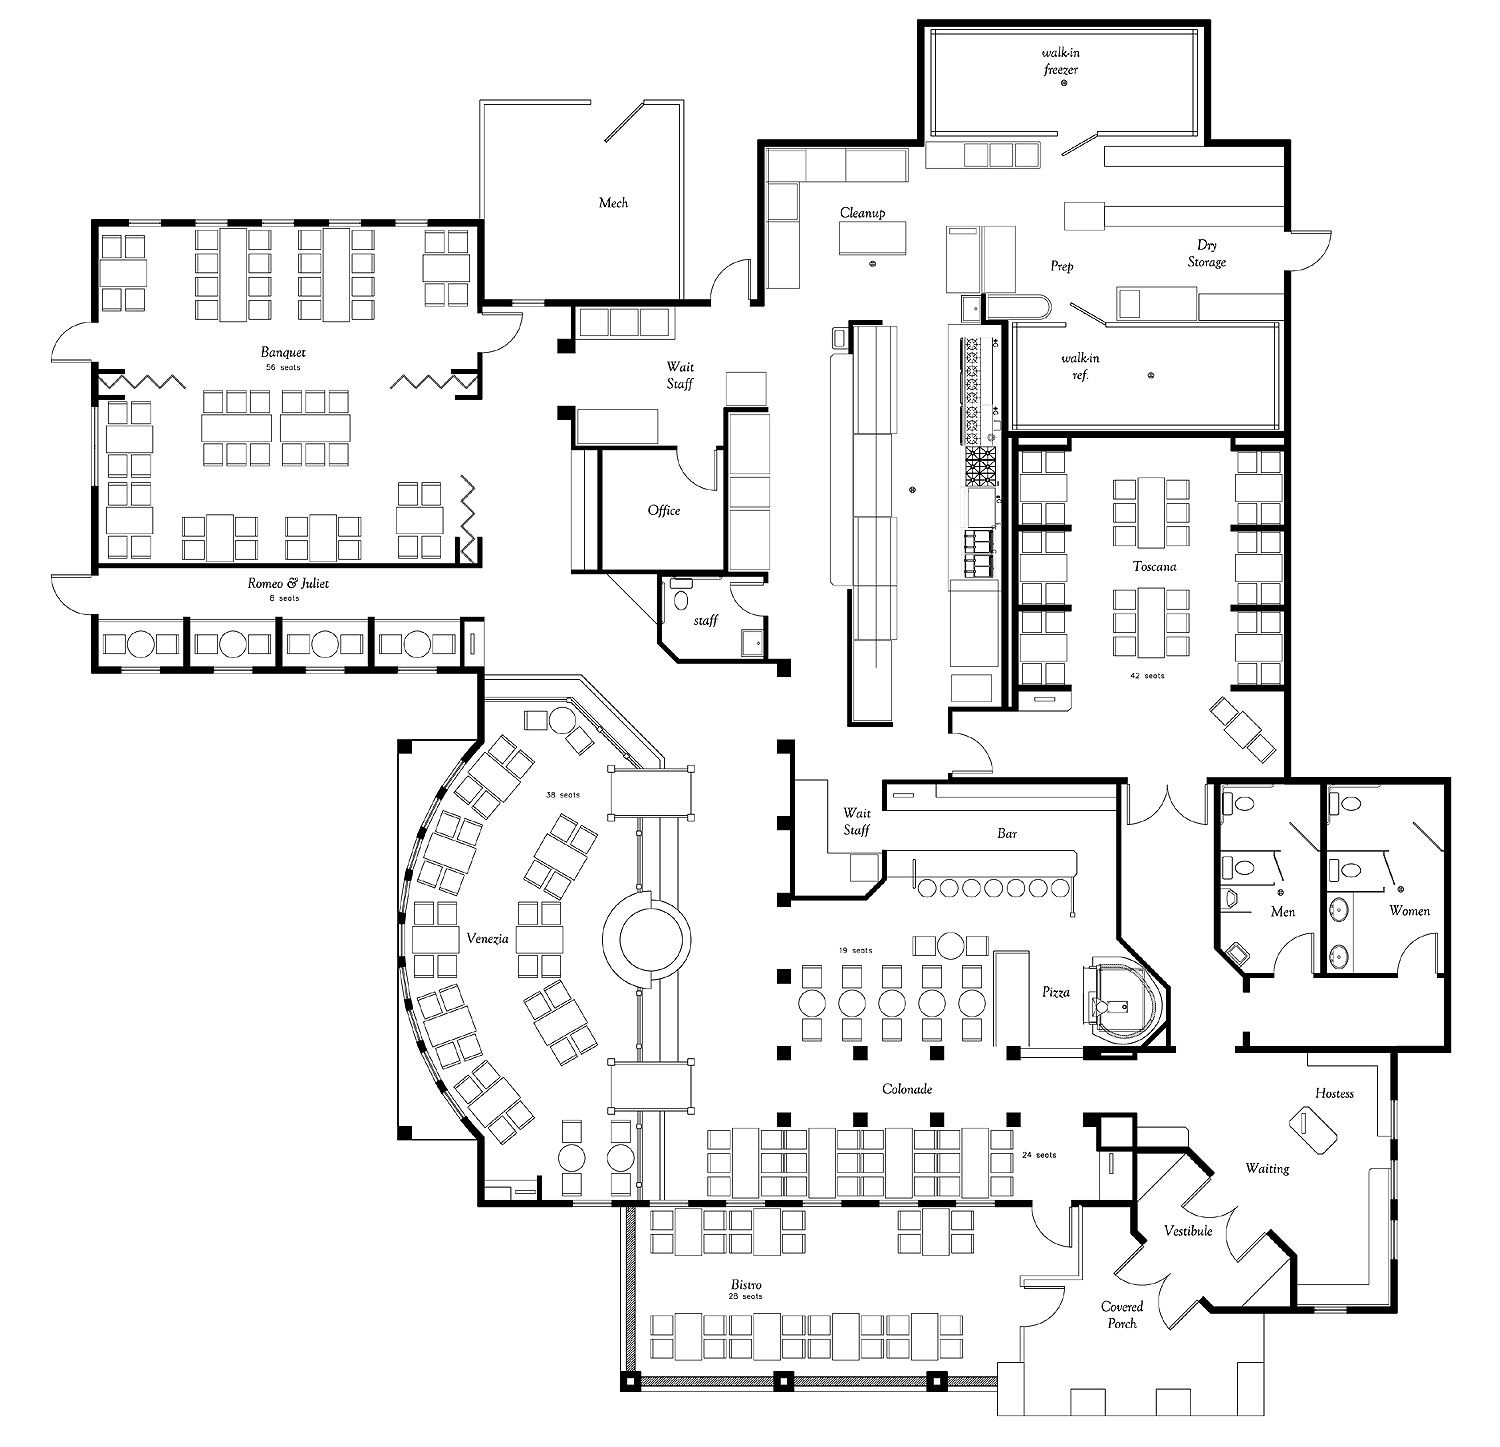 Industrial Kitchen Layout Plan: Home--Floorplans: Commercial